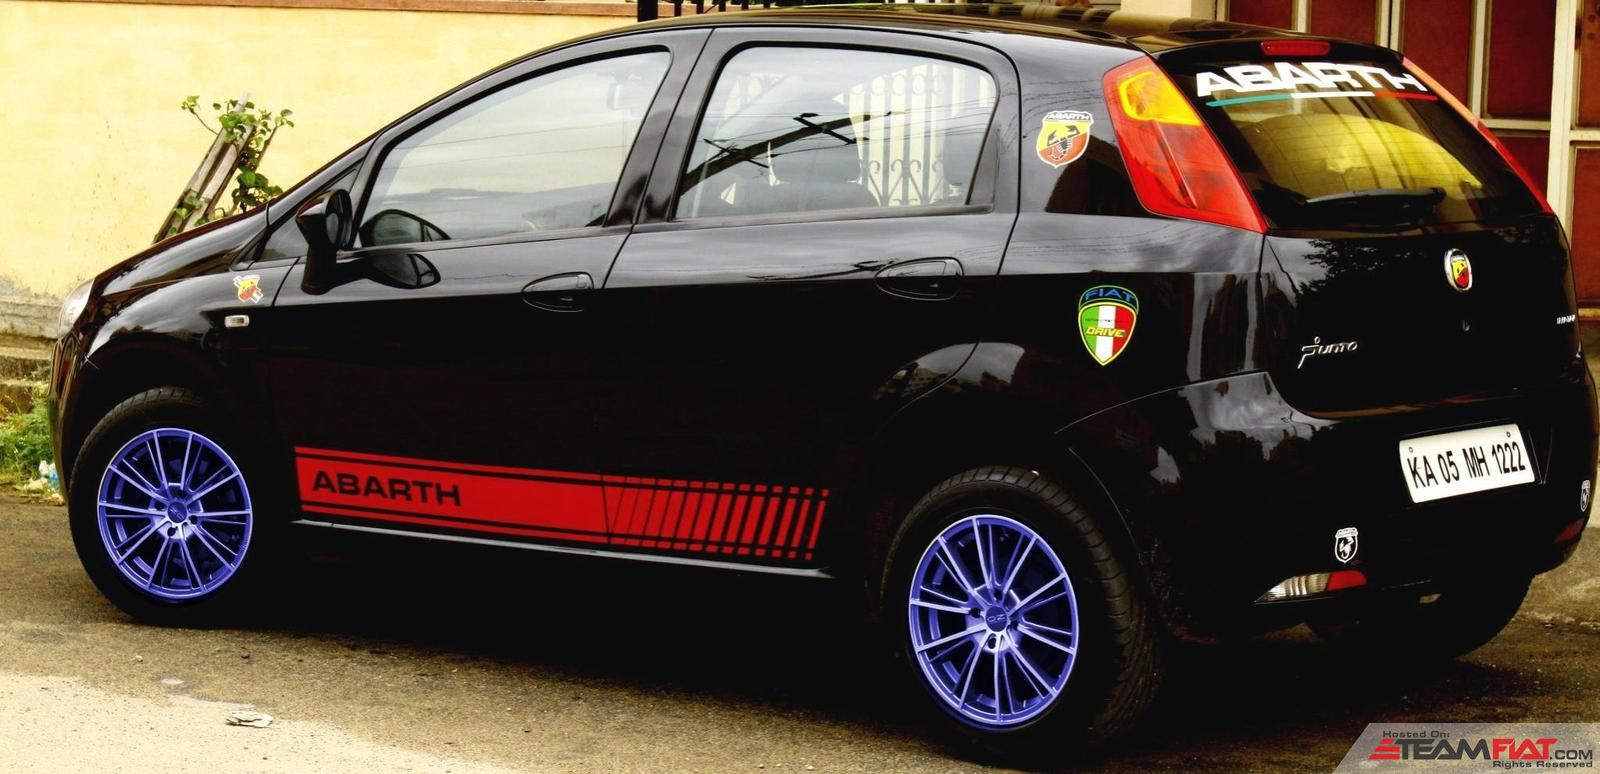 blueabarth.jpg